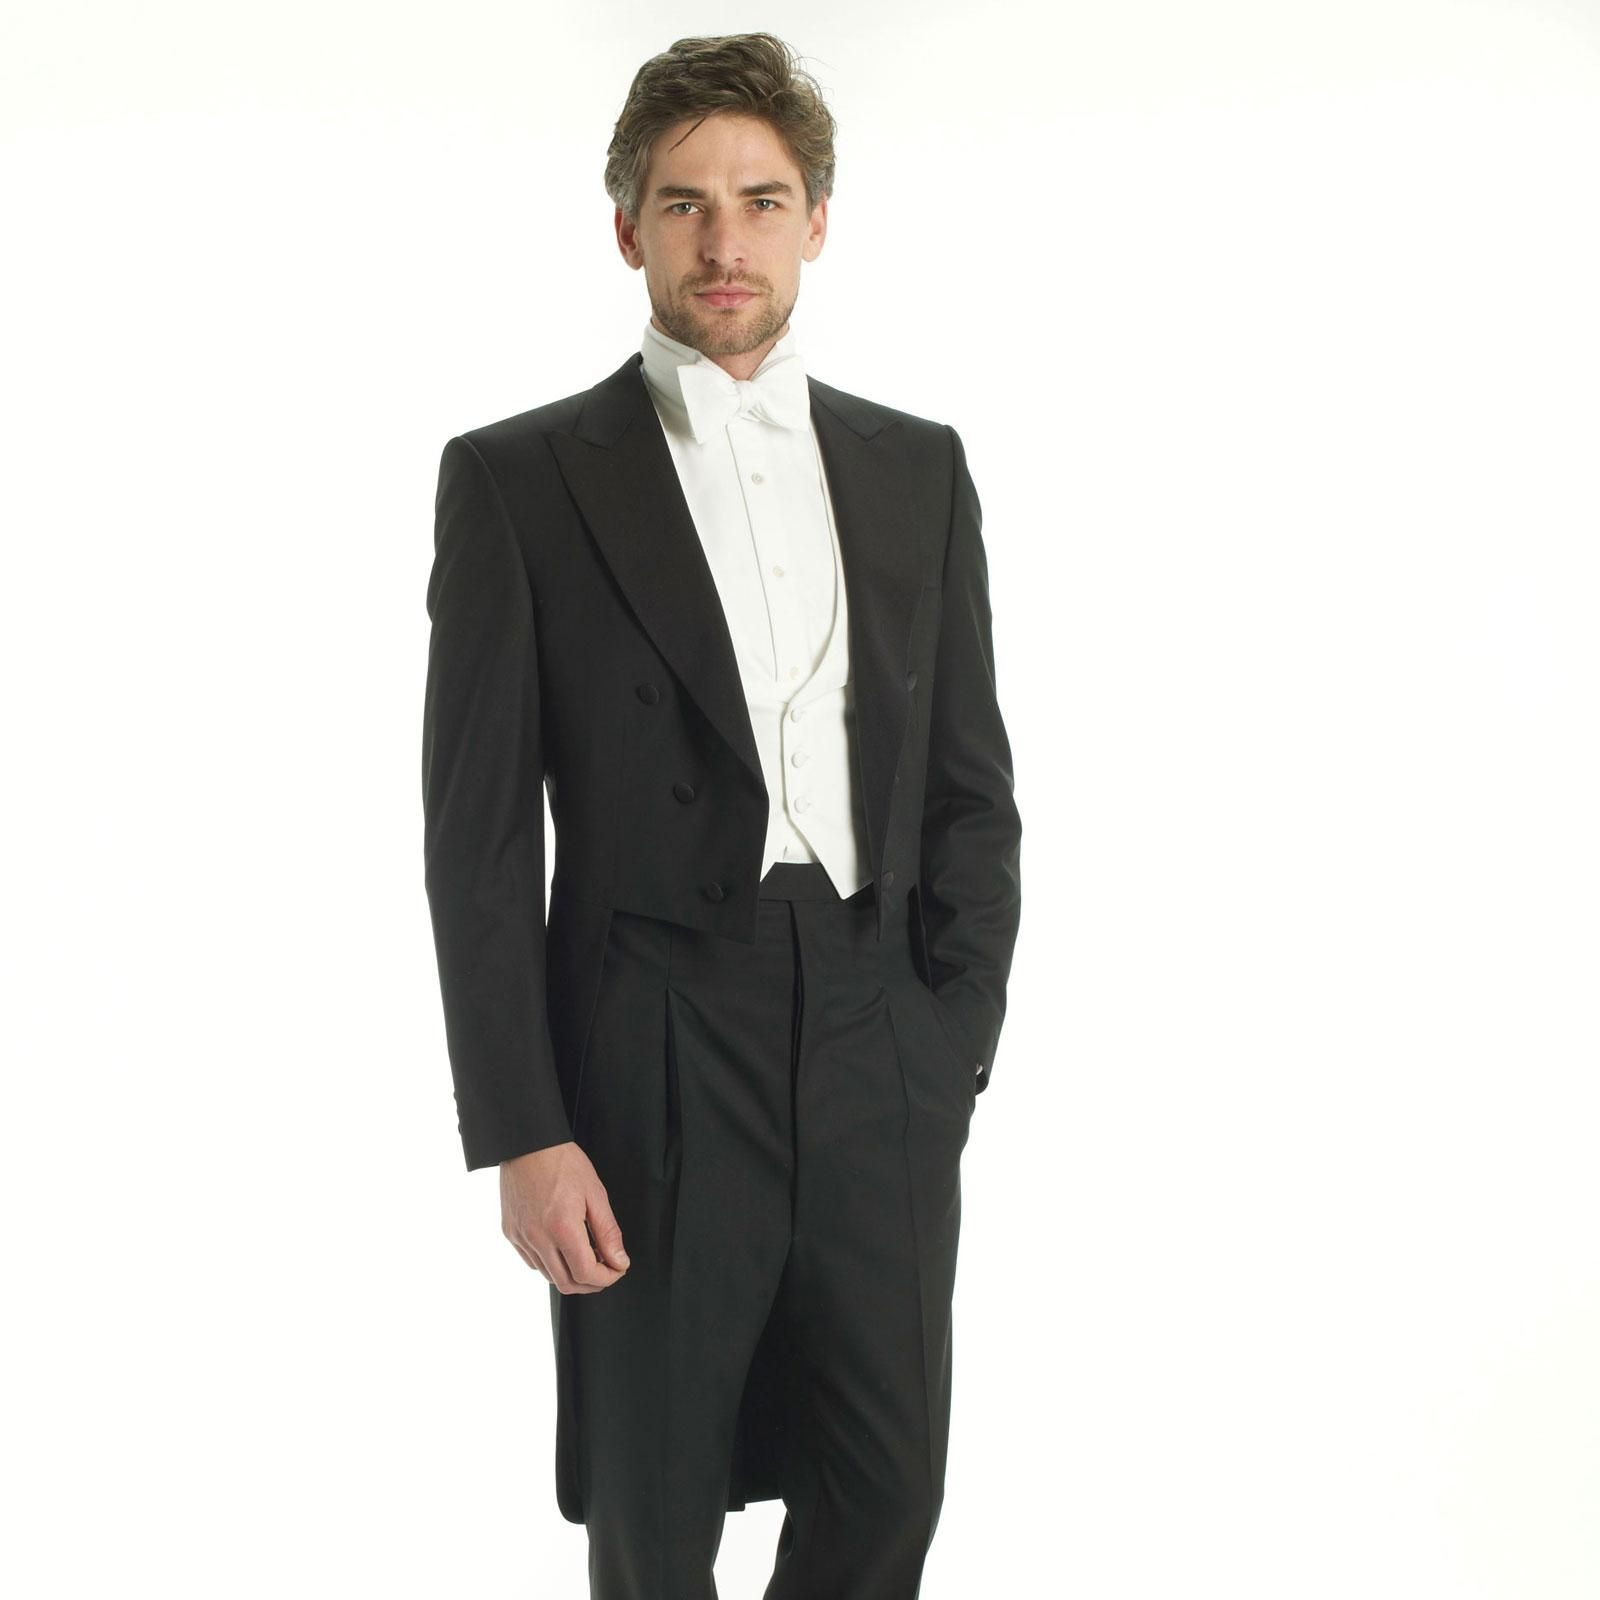 Buy 1 Get 1 for $ Suits and Separates Packages: Buy 1 Suit or Separates Package, get one Suit or Separates Package for $ Select styles only. Excludes Custom, gift cards and clearance. Particularly formal occasions may require white tie dress, which means you need formal tails paired with a white bow tie and vest.